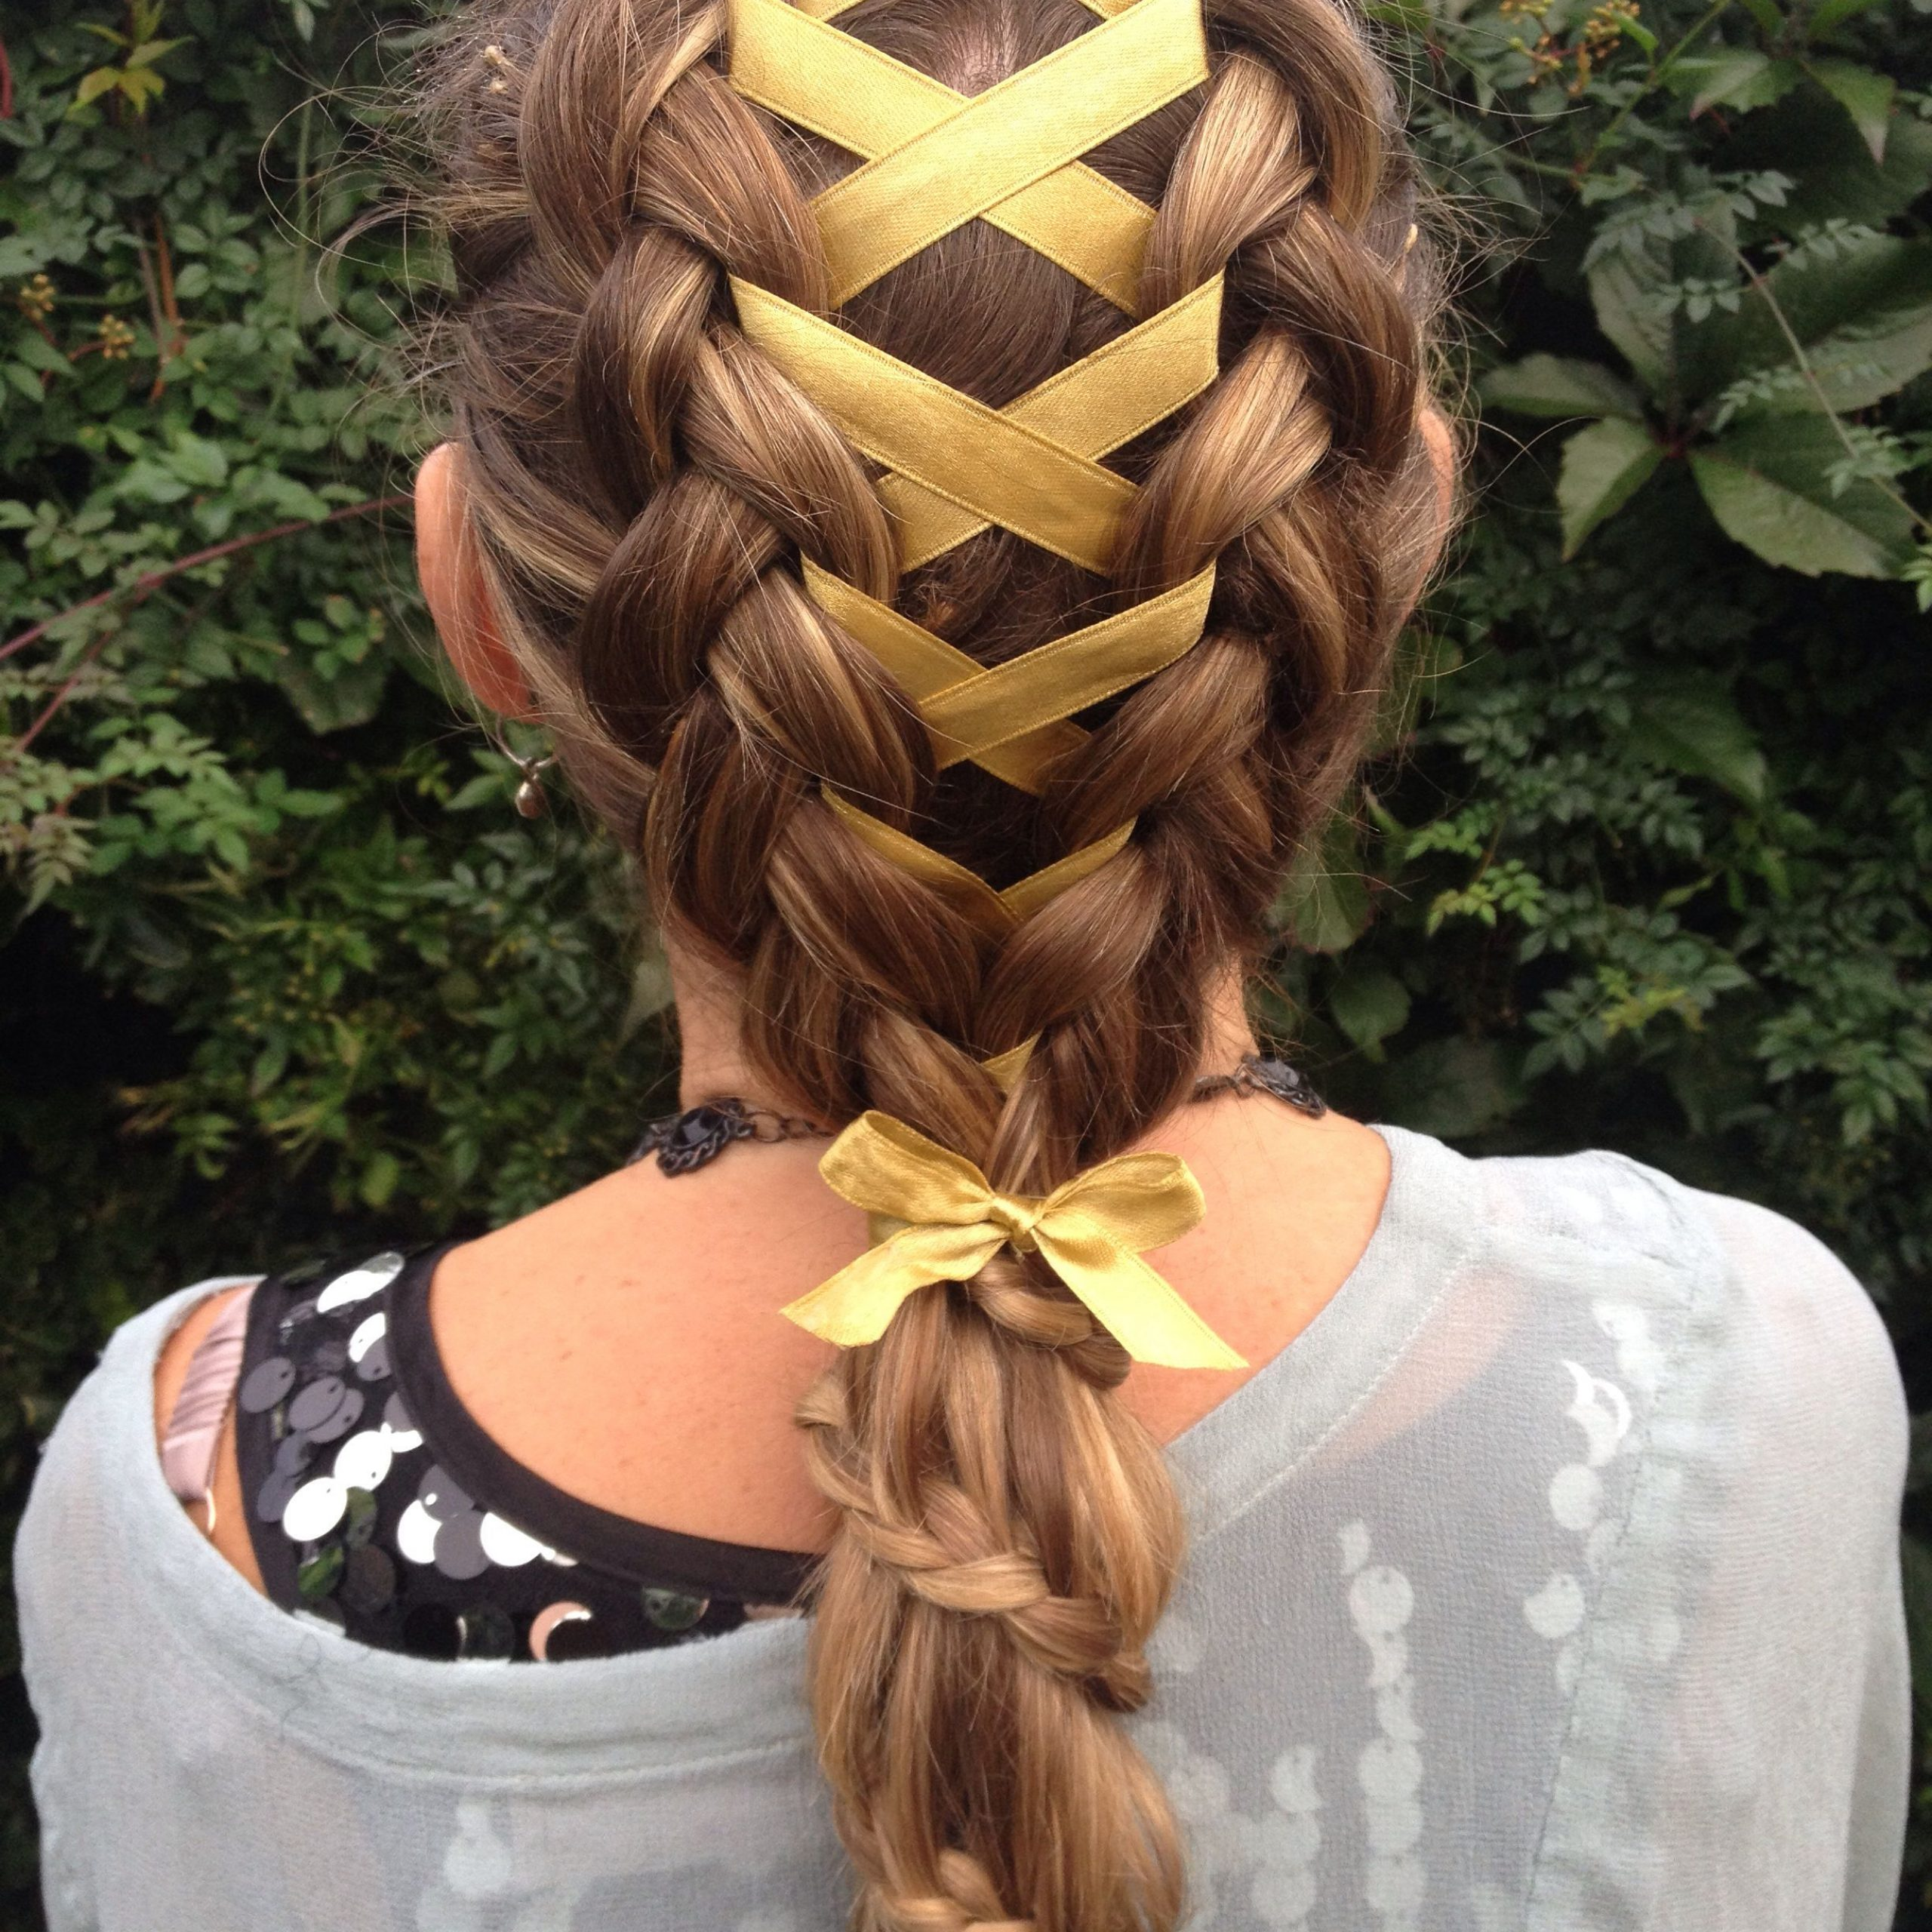 Corset Ribbon Braid Into A Carousel Braided Ponytail (View 3 of 20)